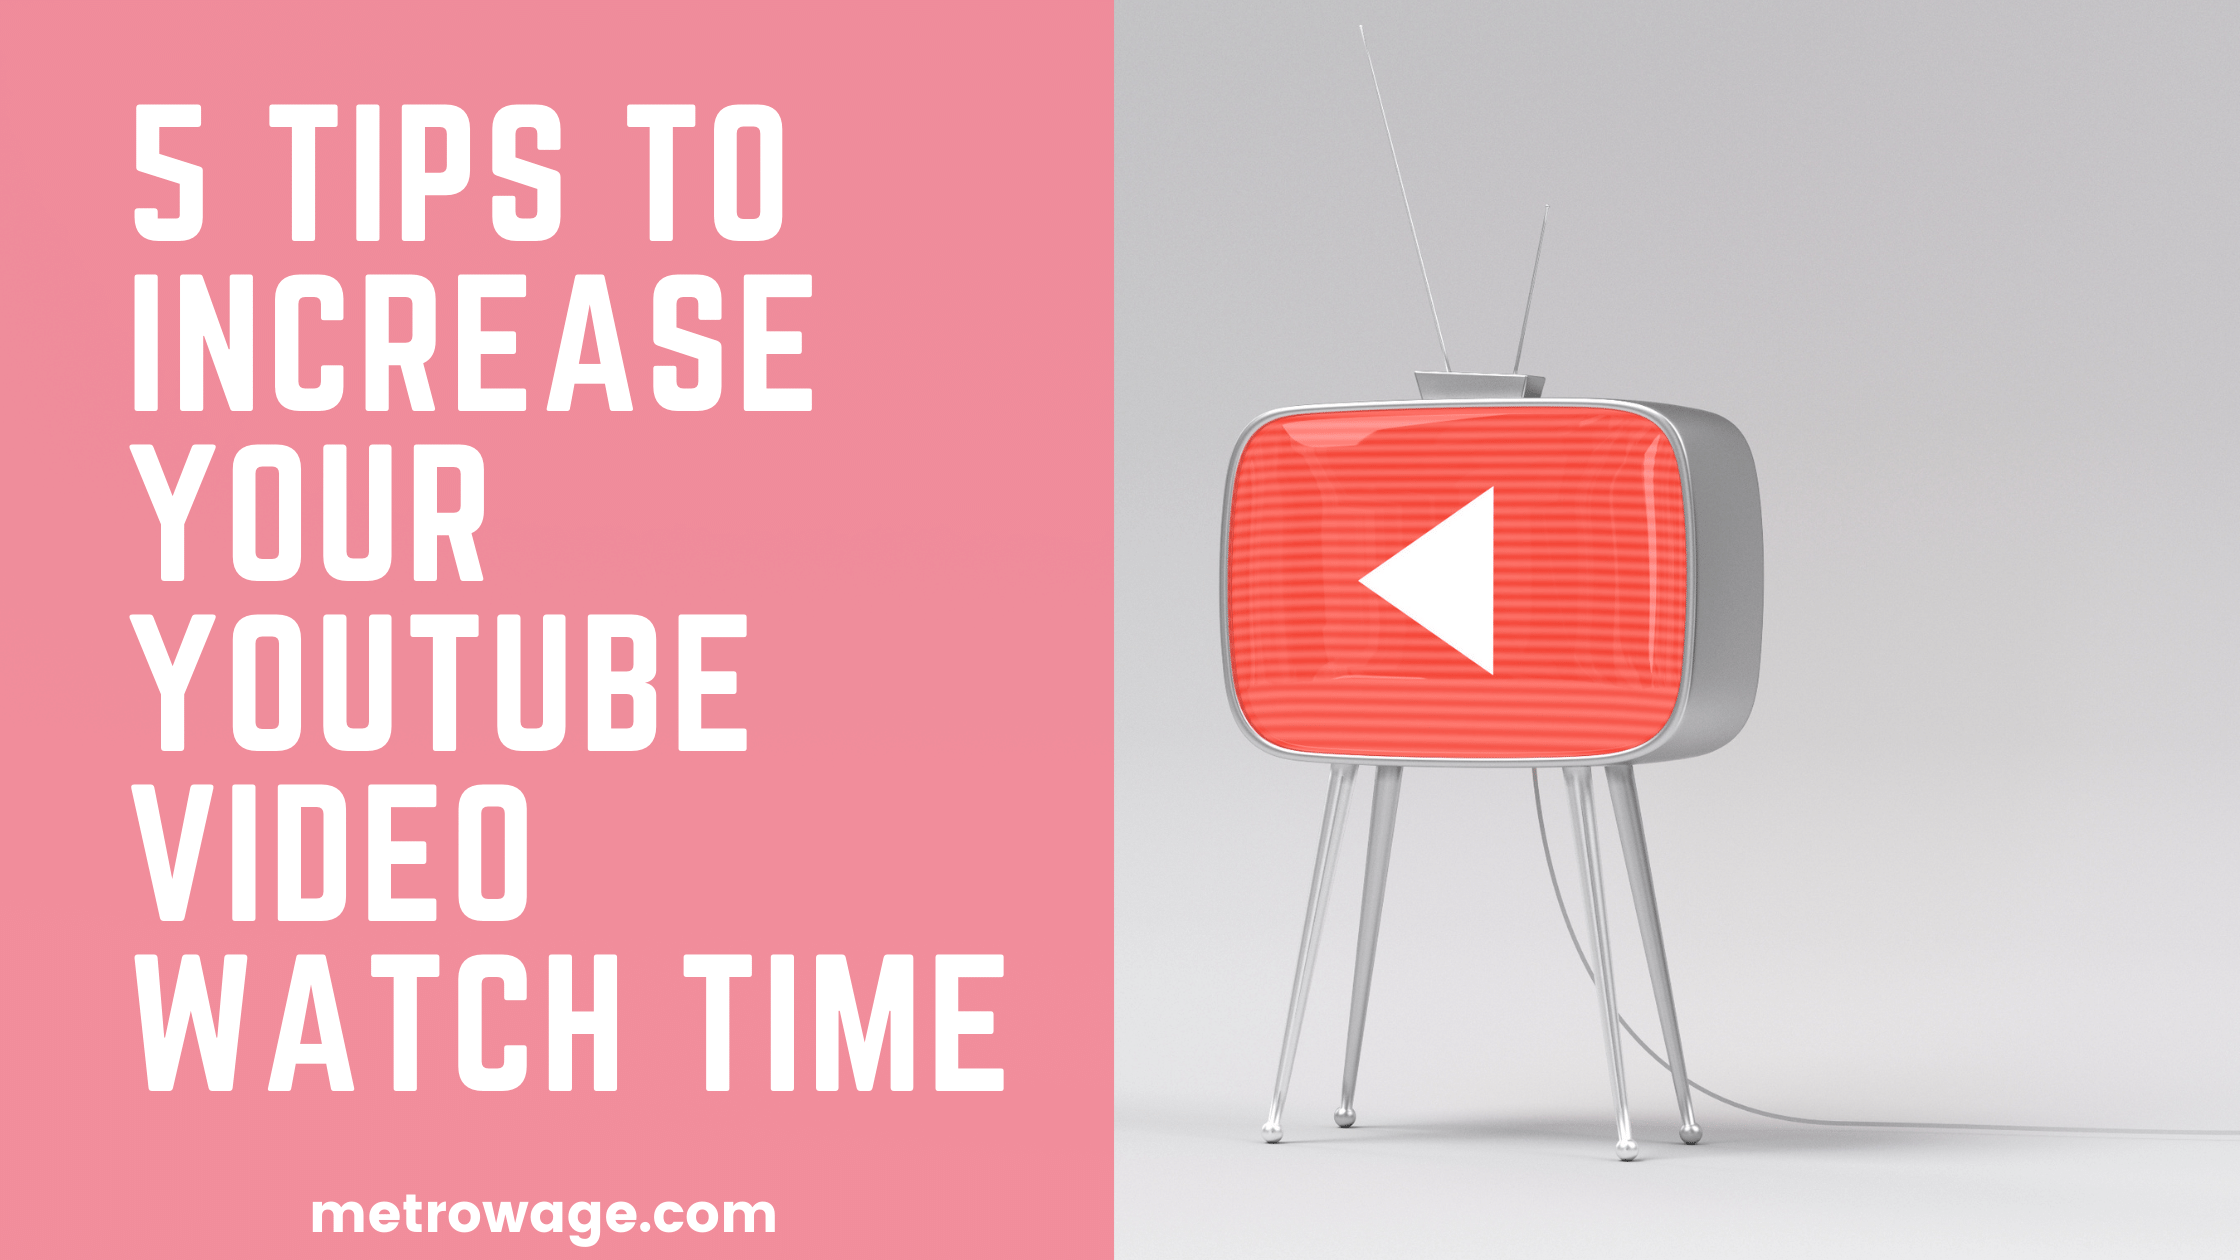 5 Tips to Increase Your YouTube Video Watch Time